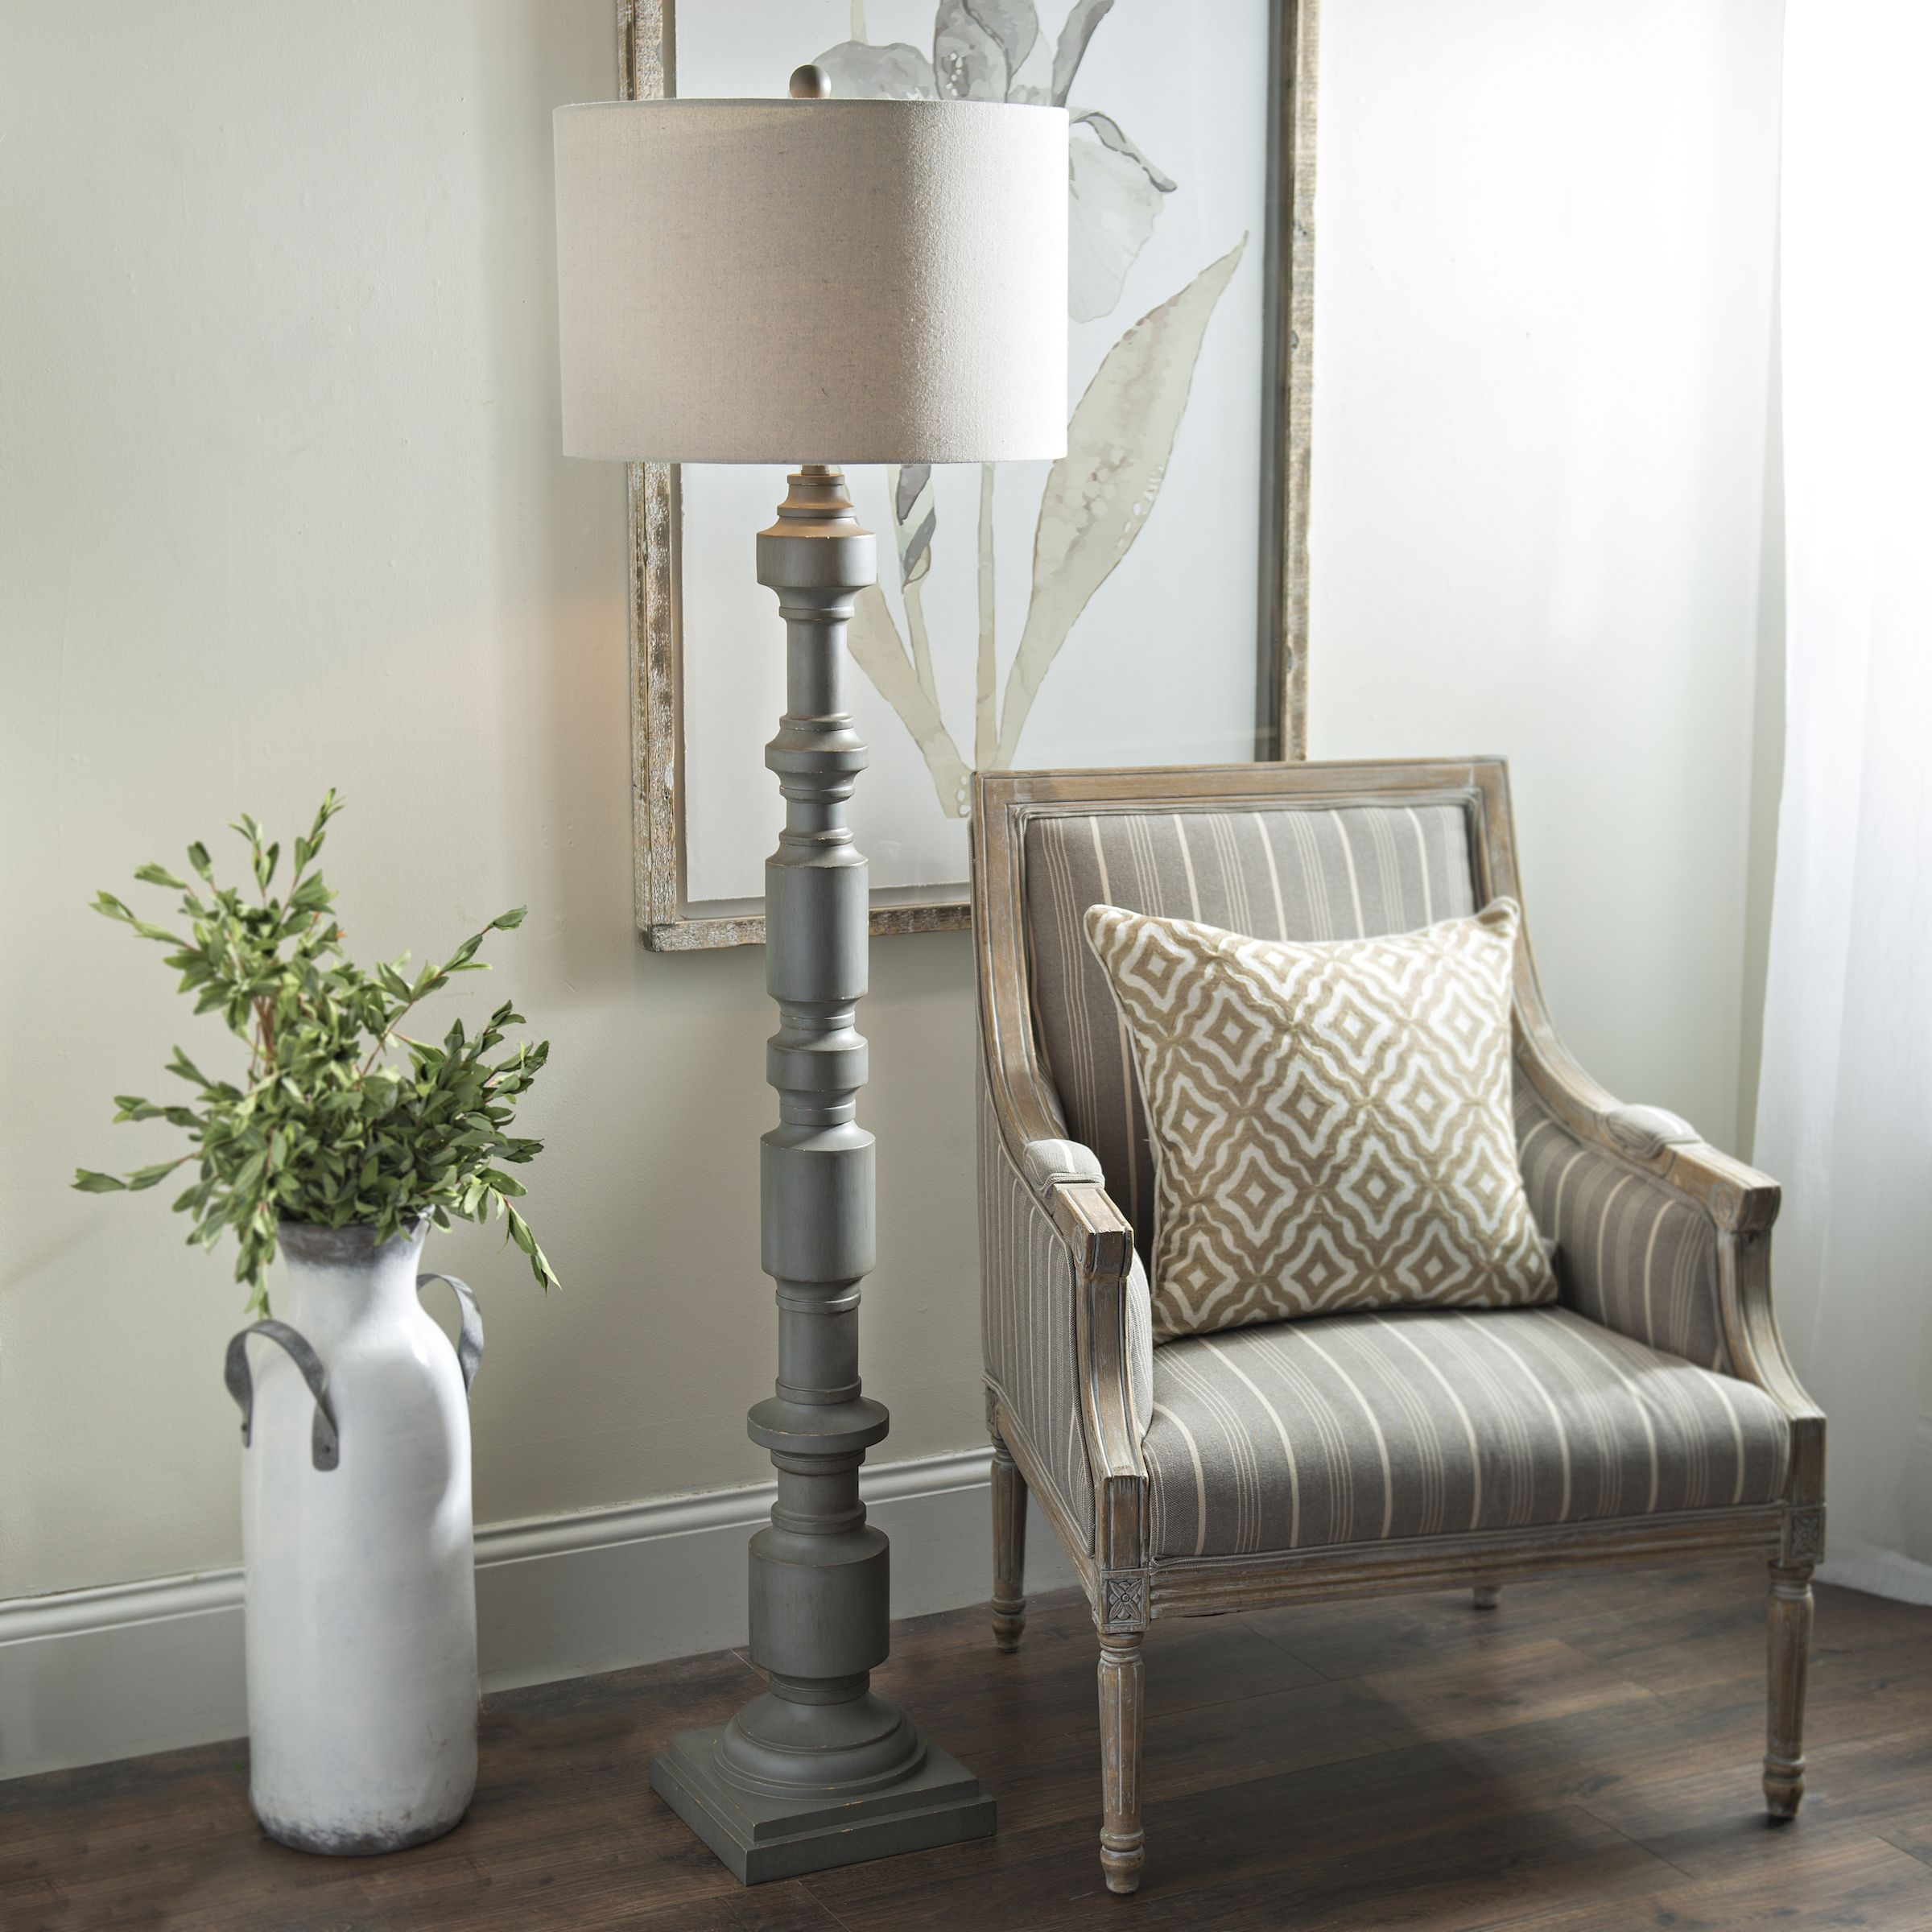 Add Dimension To Your Decor With Unique Lamps Like This One Find This Look At Kirkland S Today Floor Lamps Living Room Cylinder Floor Lamp Lamps Living Room